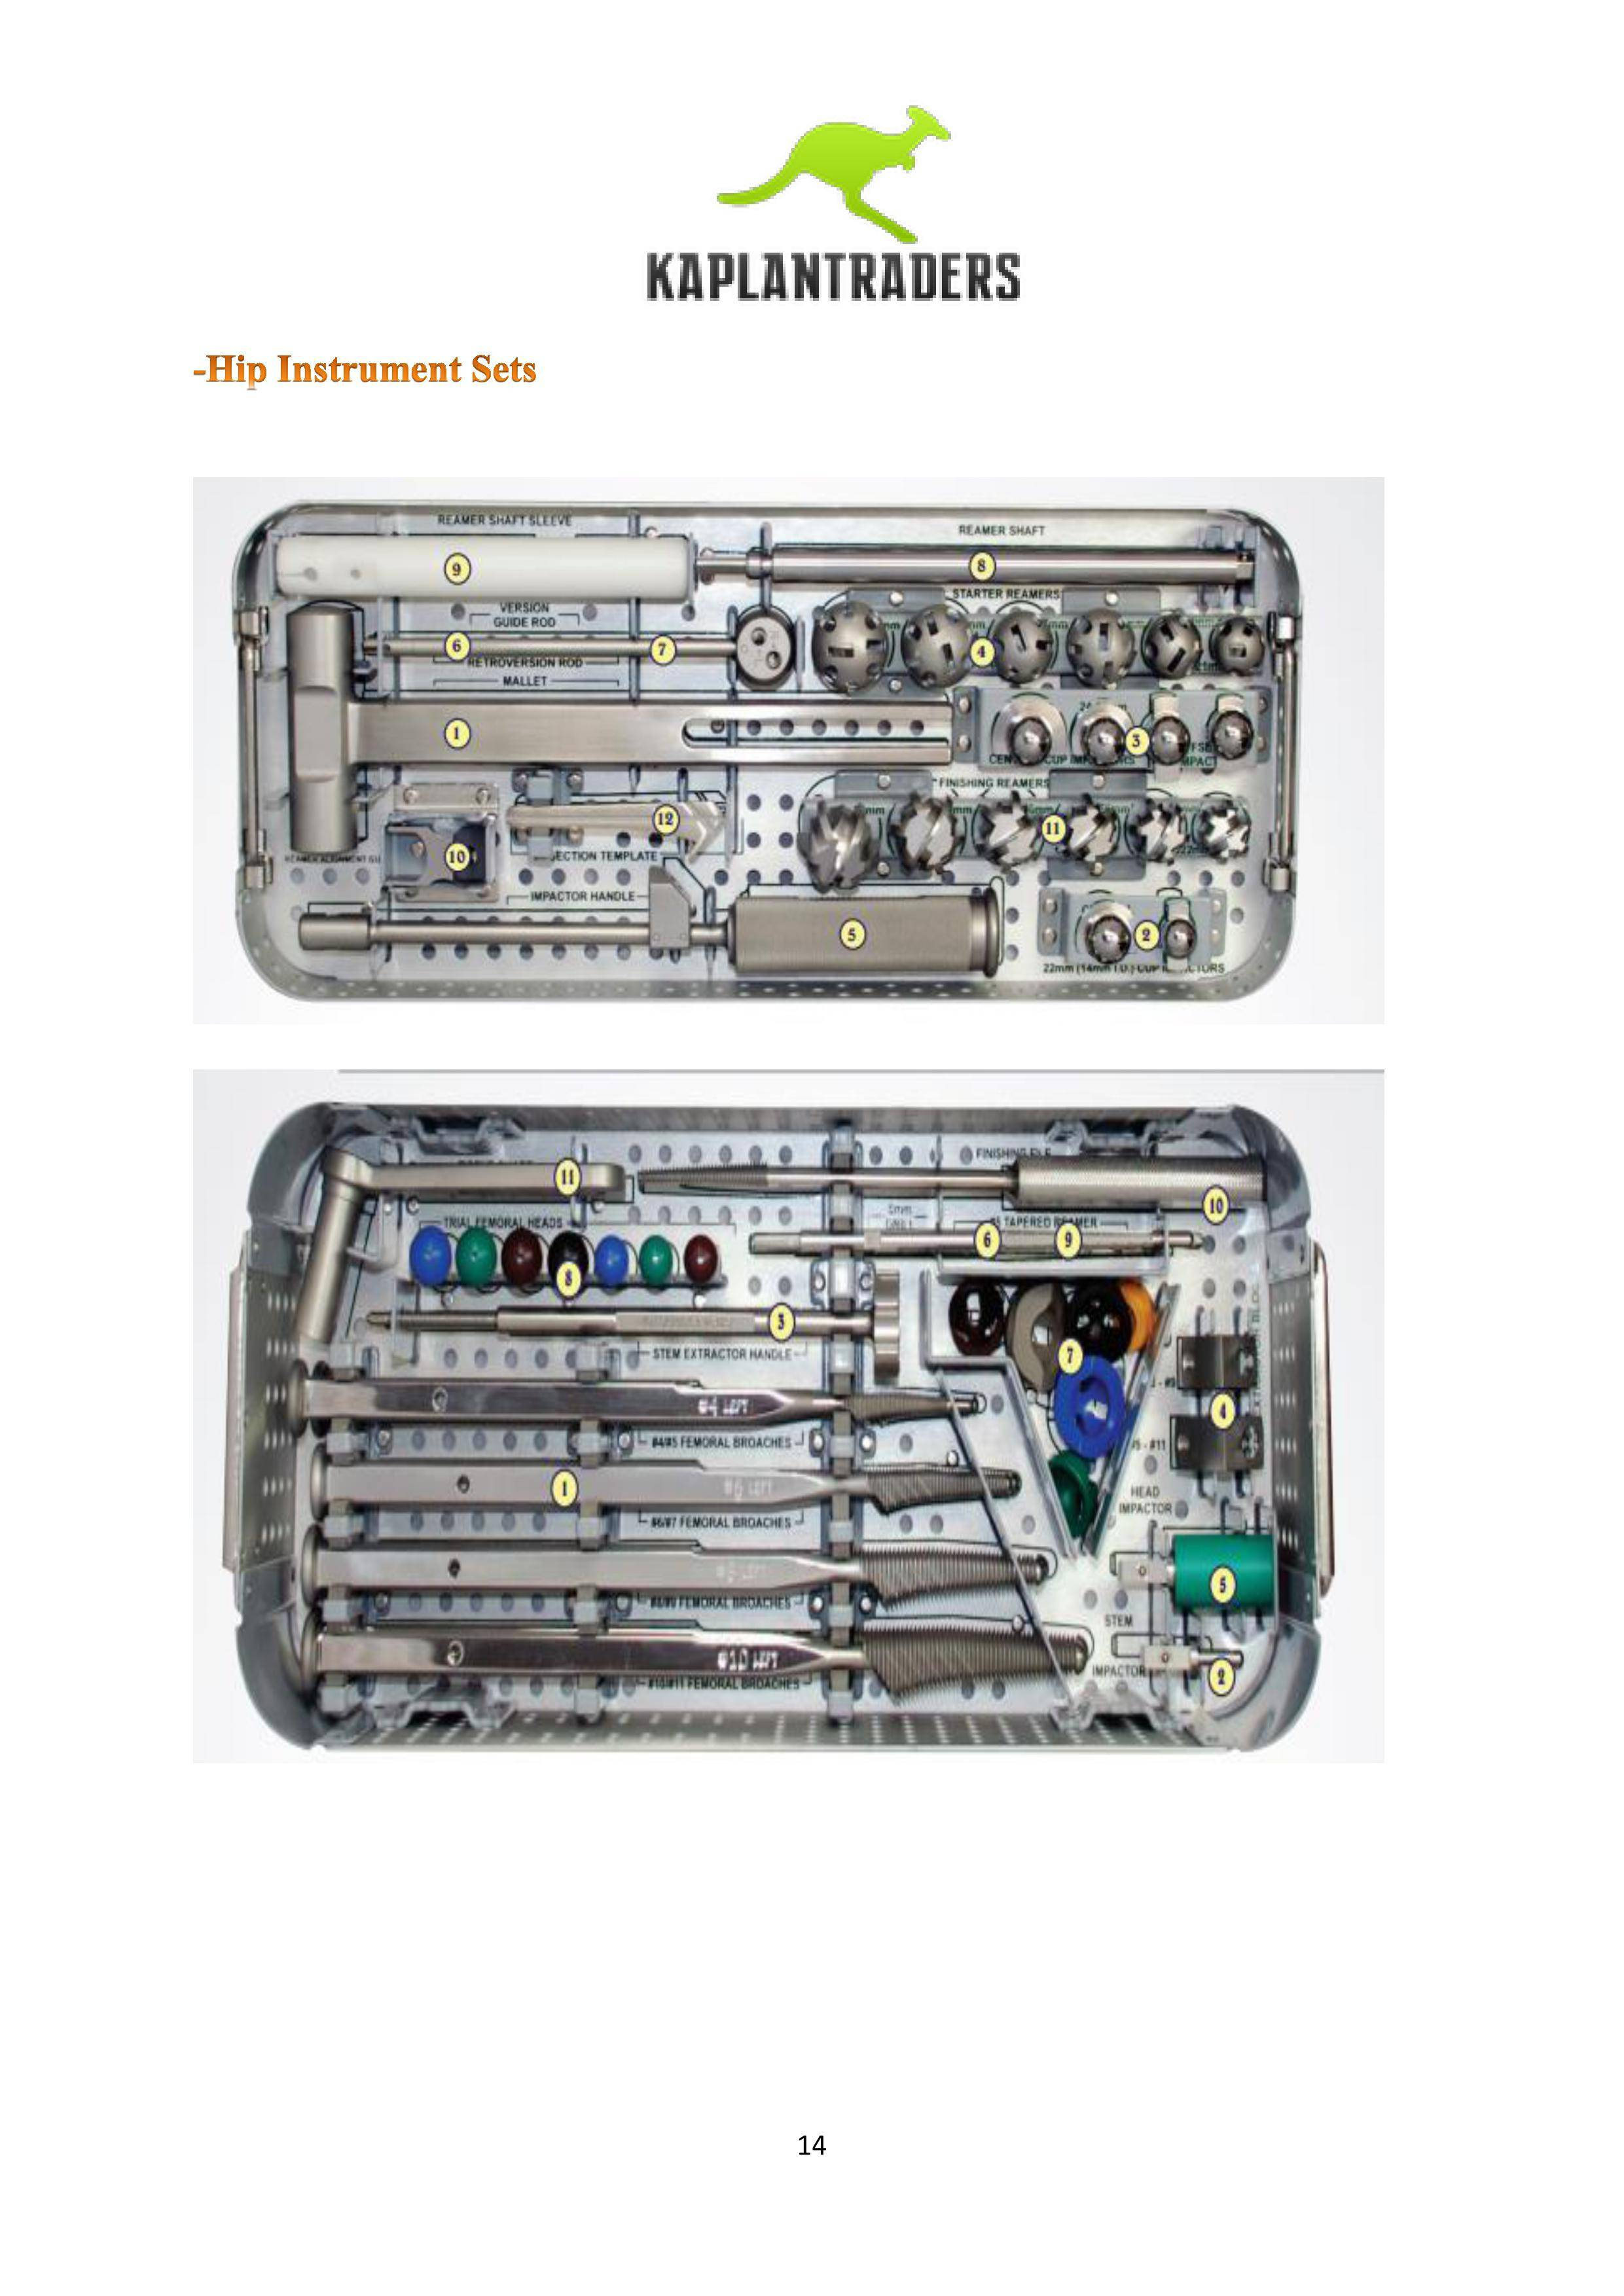 Hip Hand Instrument Set